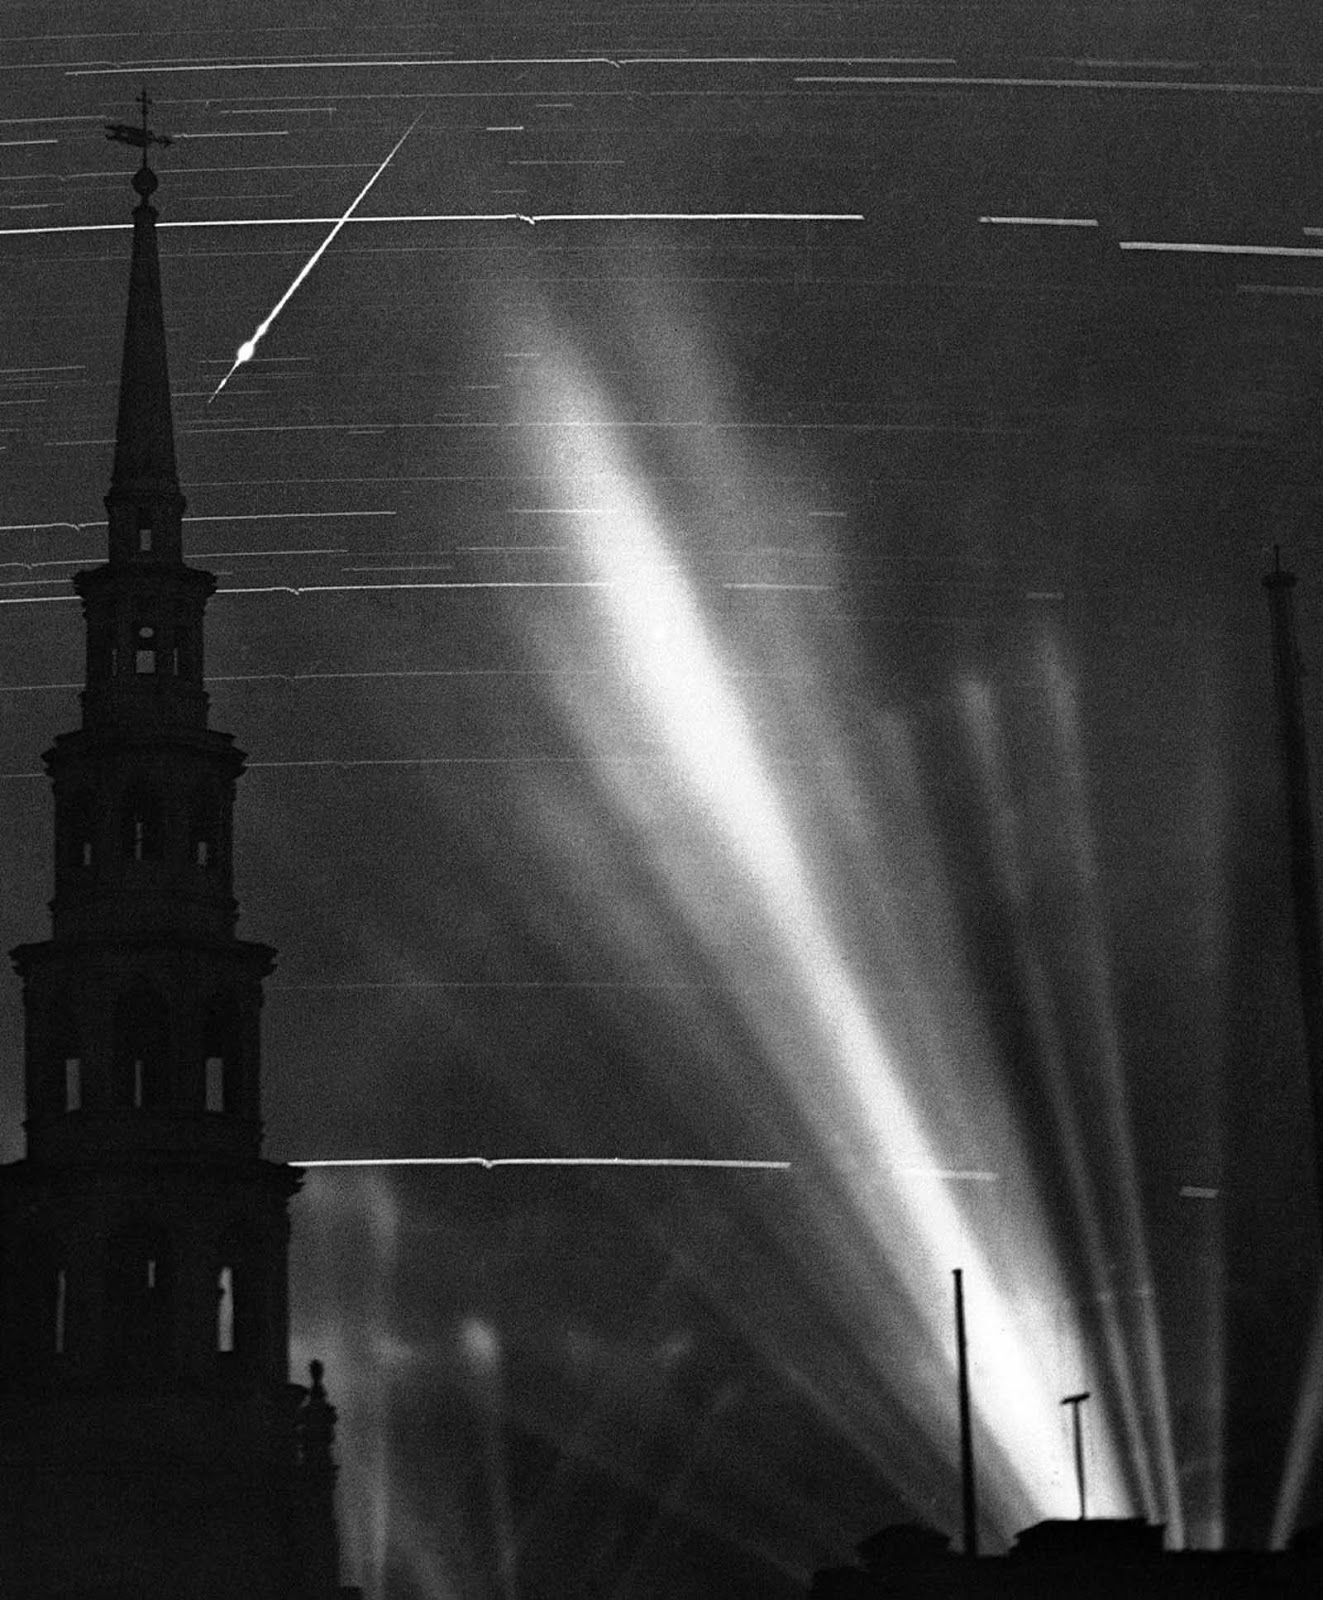 A ninety minute exposure taken from a Fleet Street rooftop during an air raid in London, on September 2, 1940. The searchlight beams on the right had picked up an enemy raider. The horizontal marks across the image are from stars and the small wiggles in them were caused by the concussions of anti-aircraft fire vibrating the camera. The German pilot released a flare, which left a streak across the top left, behind the steeple of St. Bride's Church.